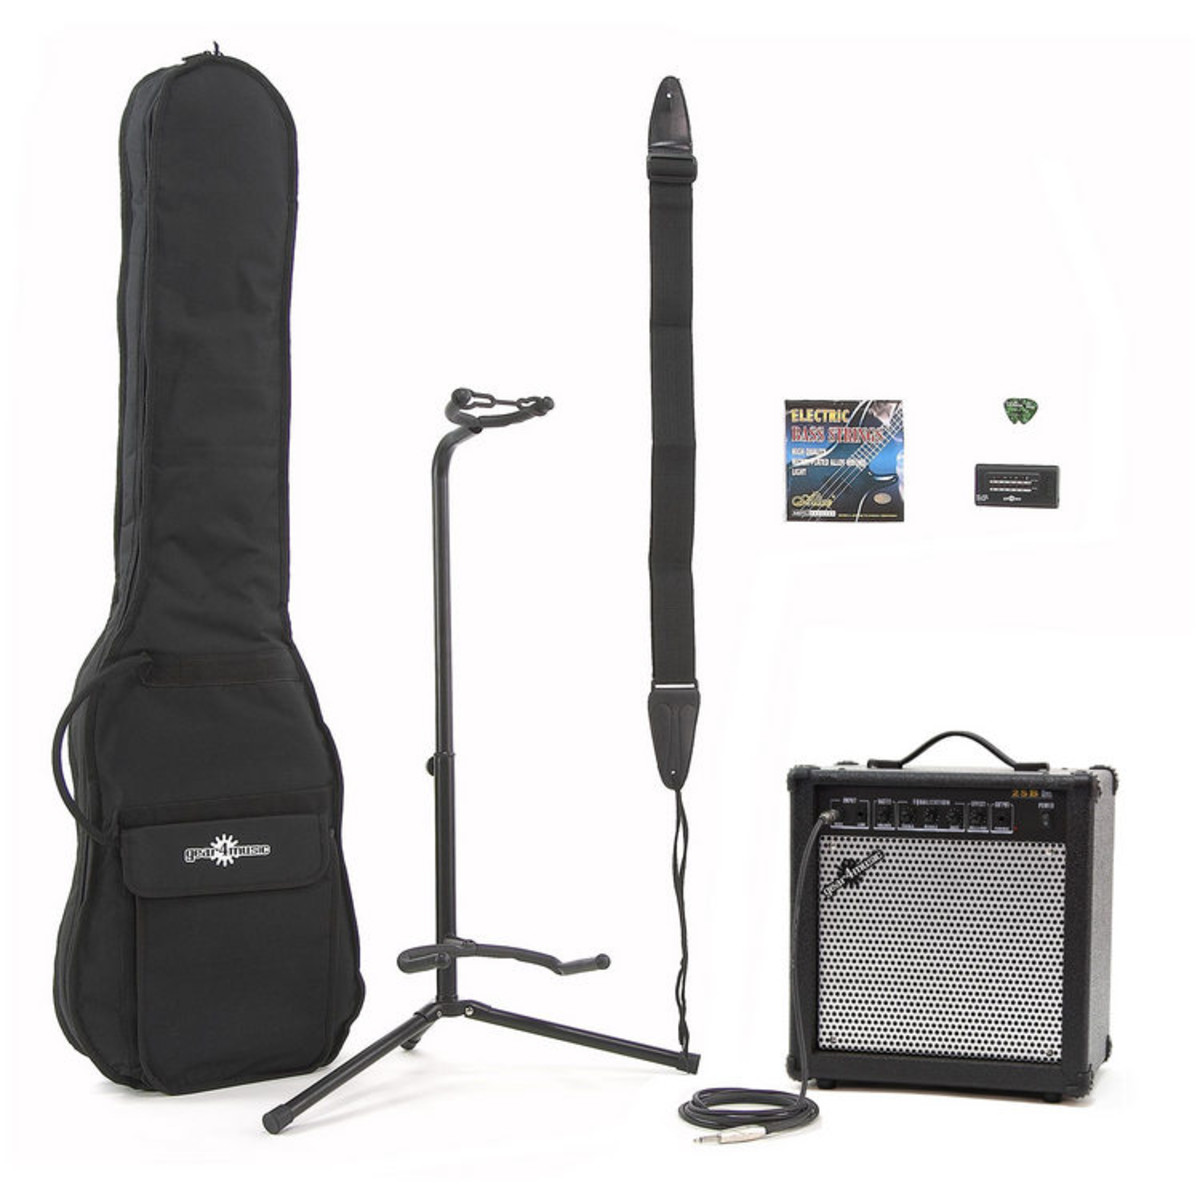 25 Watt Bass Amp & Accessory Pack